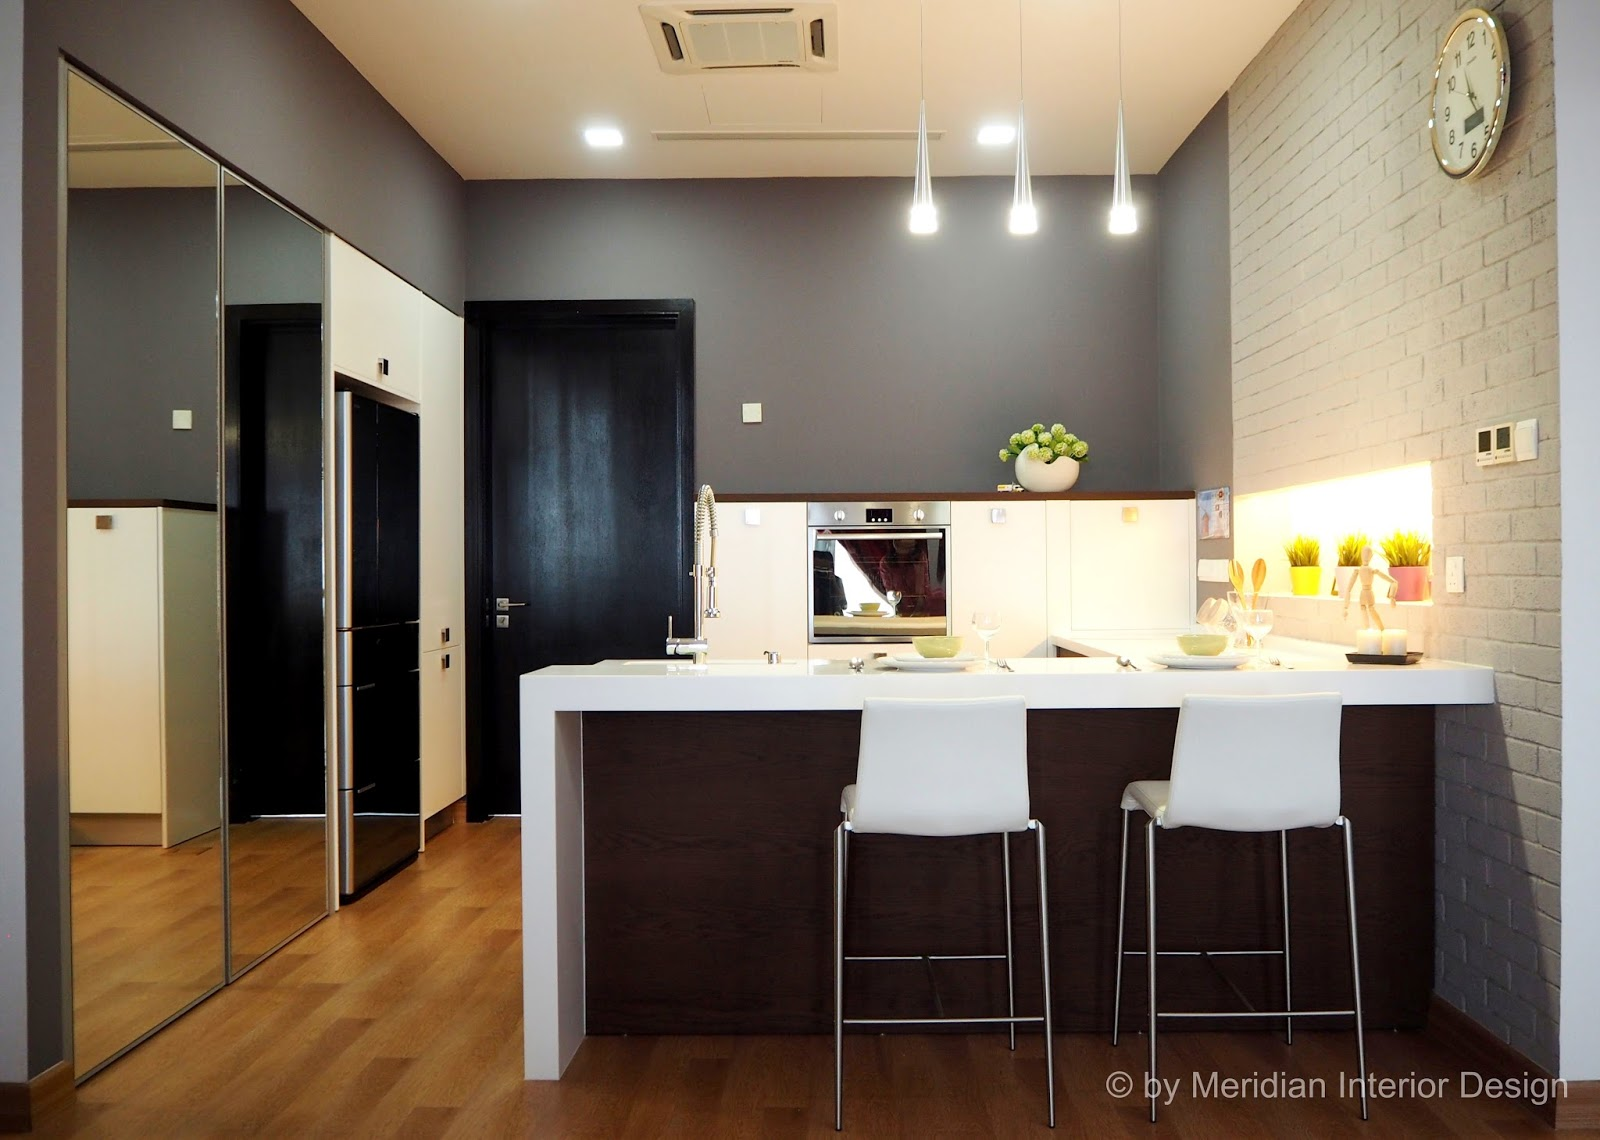 Modern Kitchen Design For Small House Inspiration Through Creative Interior Designs Compact Kitchen